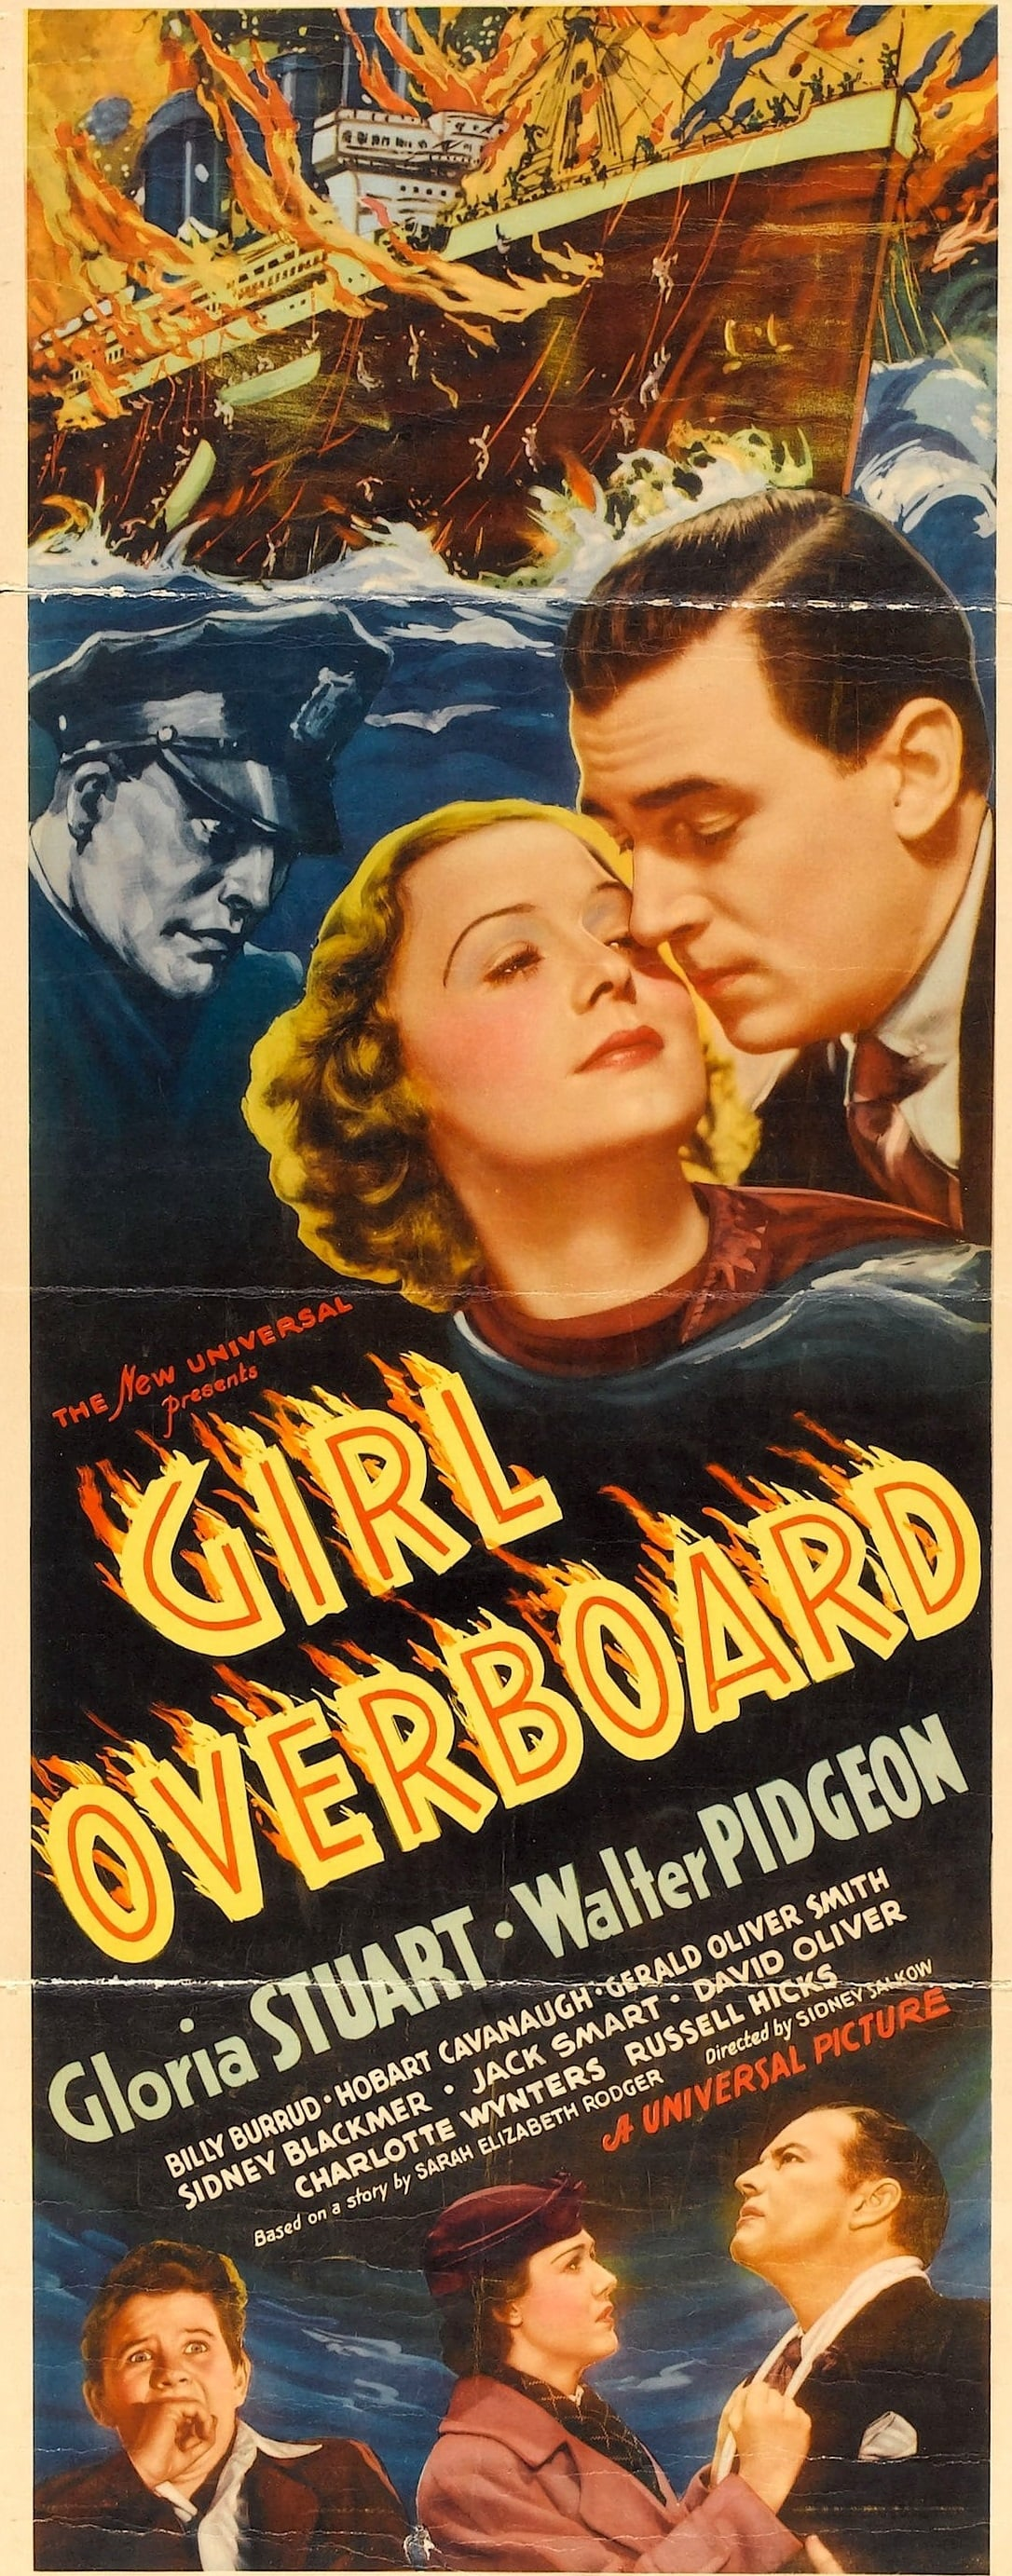 Girl Overboard (1937)